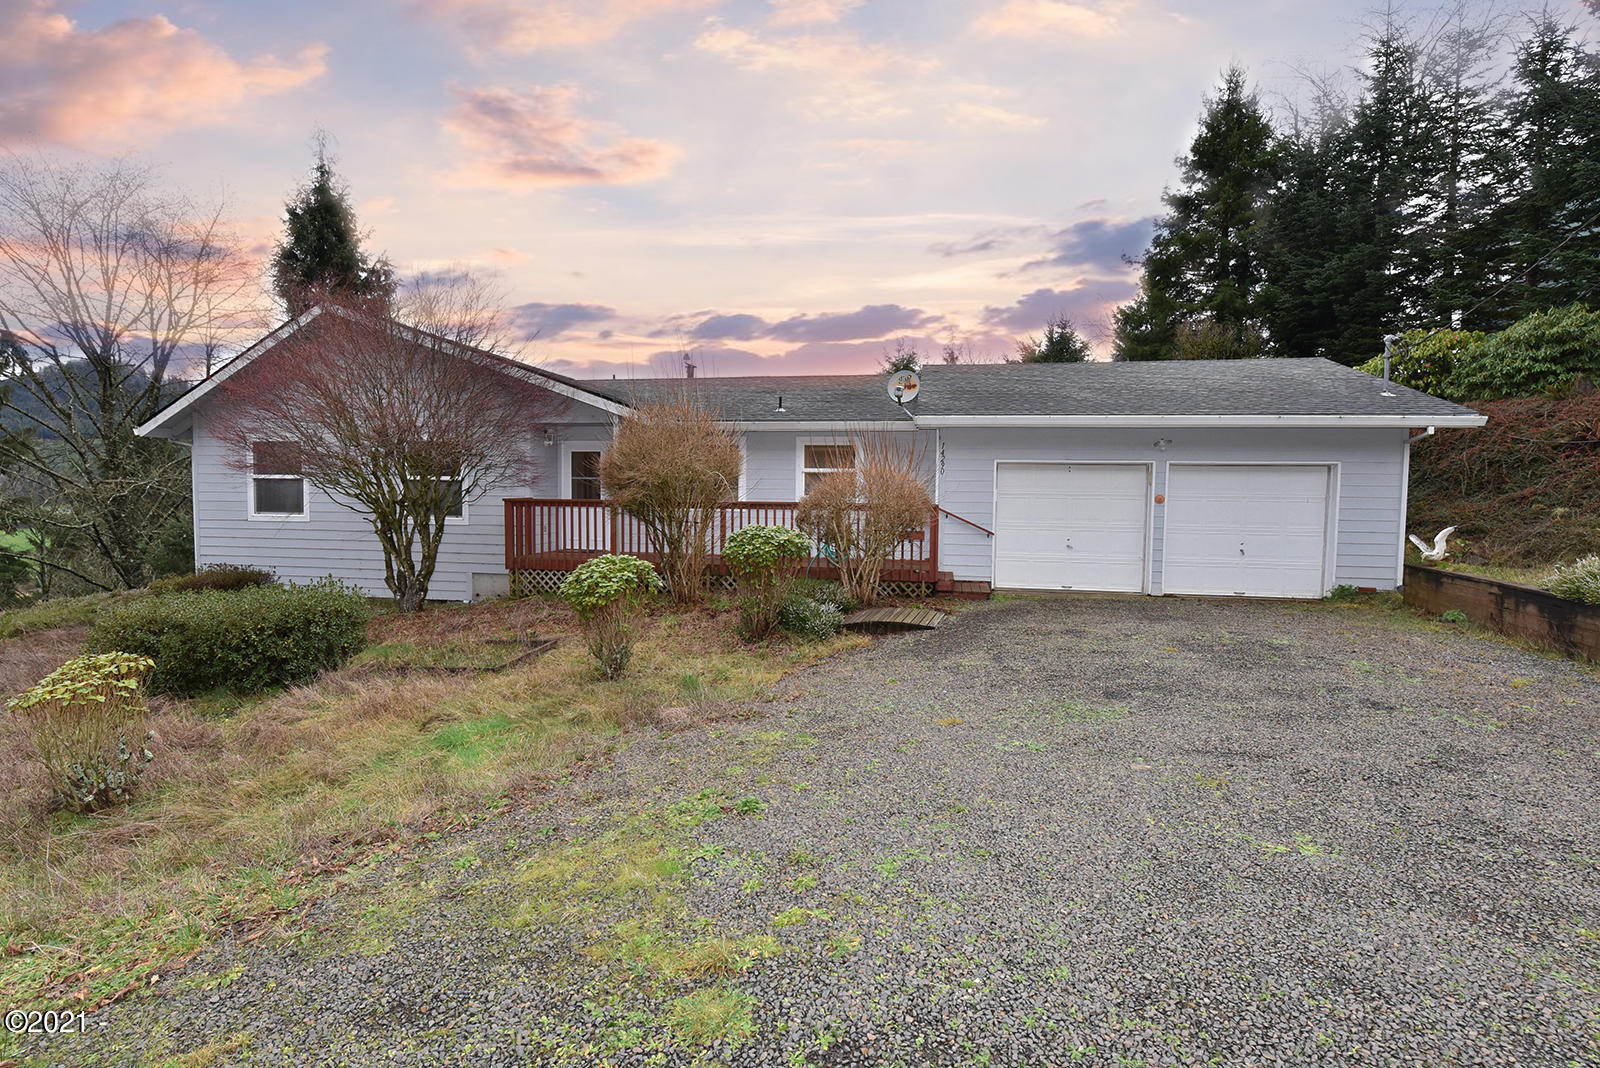 14290 Campground St, Cloverdale, OR 97112